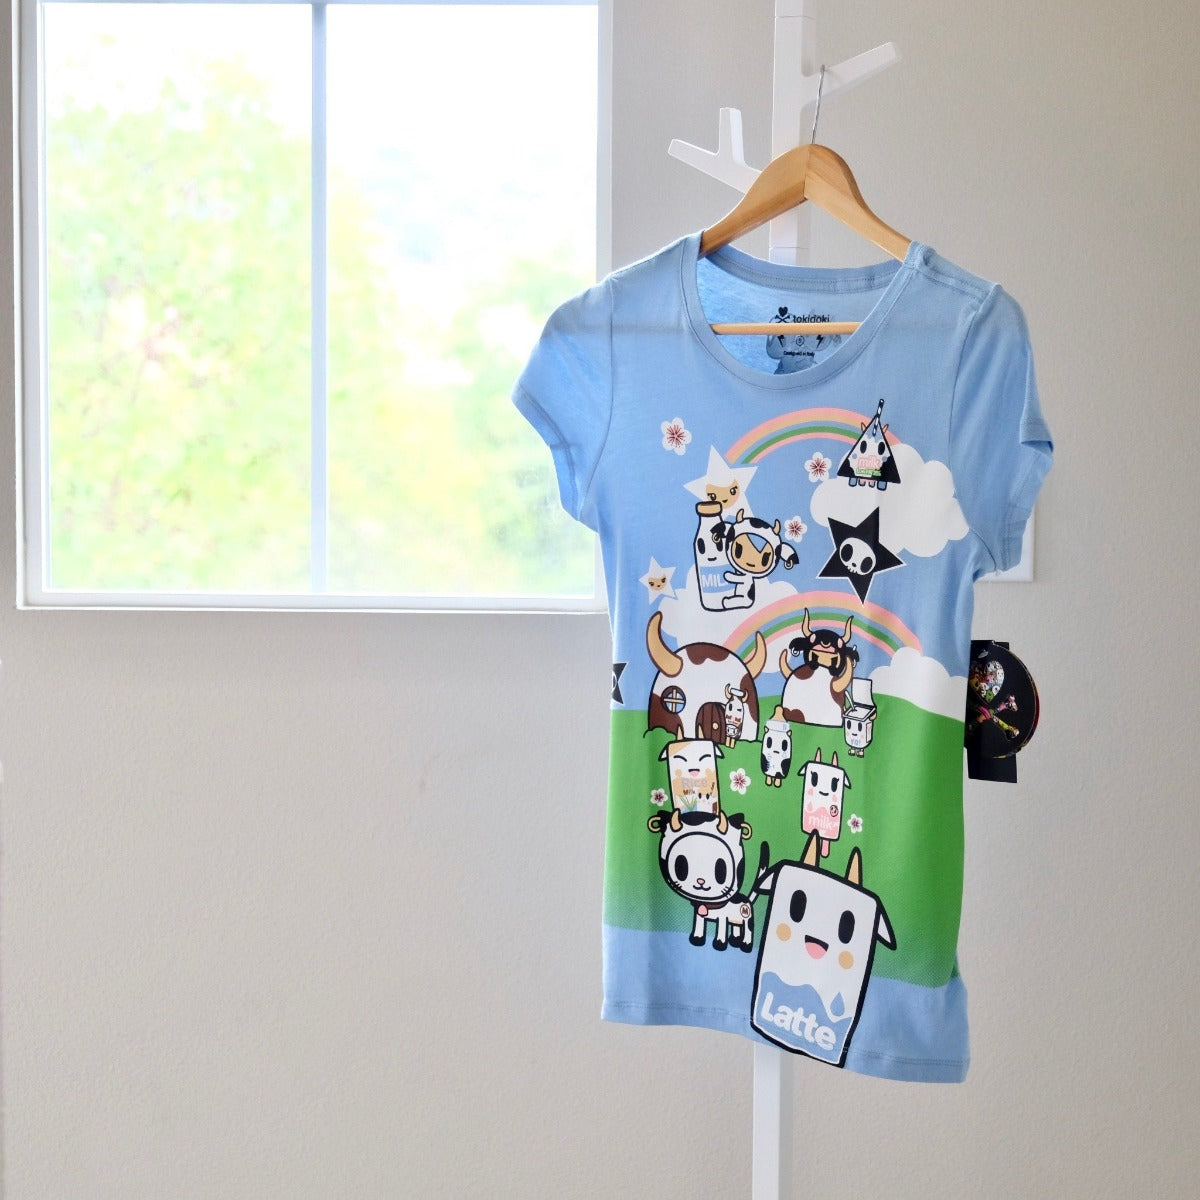 tokidoki See You Latte light blue t-shirt with Moofia front view